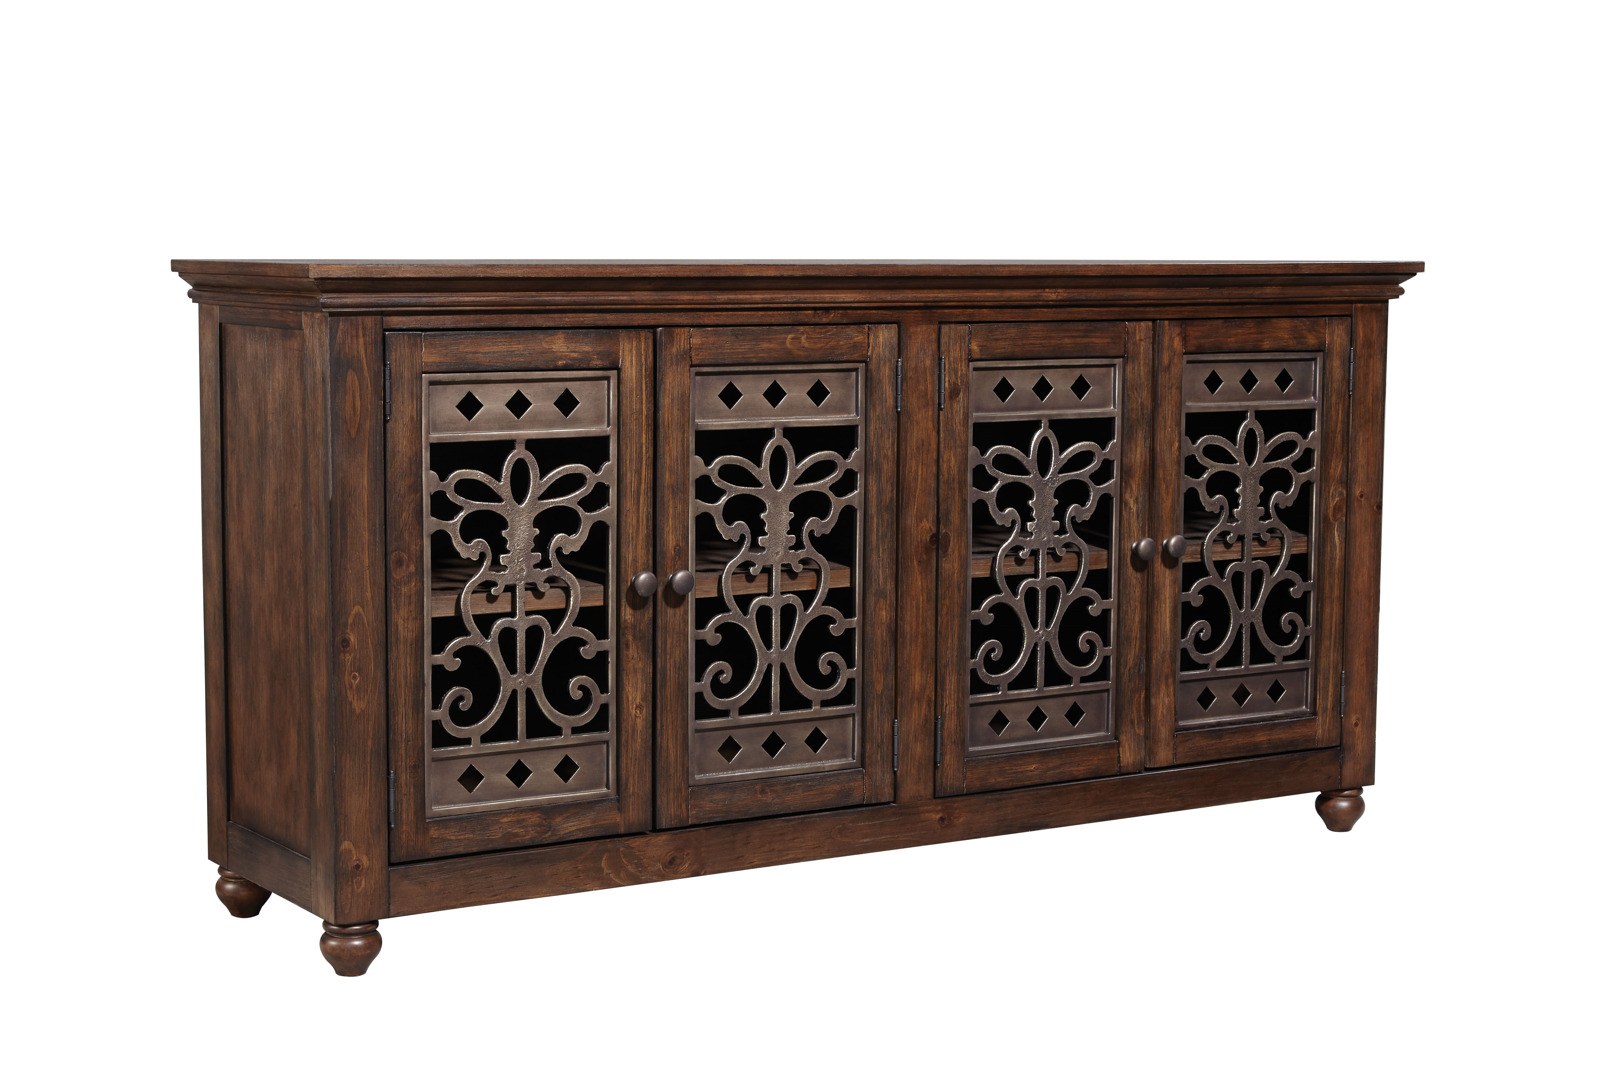 Sofa Outlet Paisley Standard Furniture Paisley Court Storage Buffet In Warm Tobacco 12822